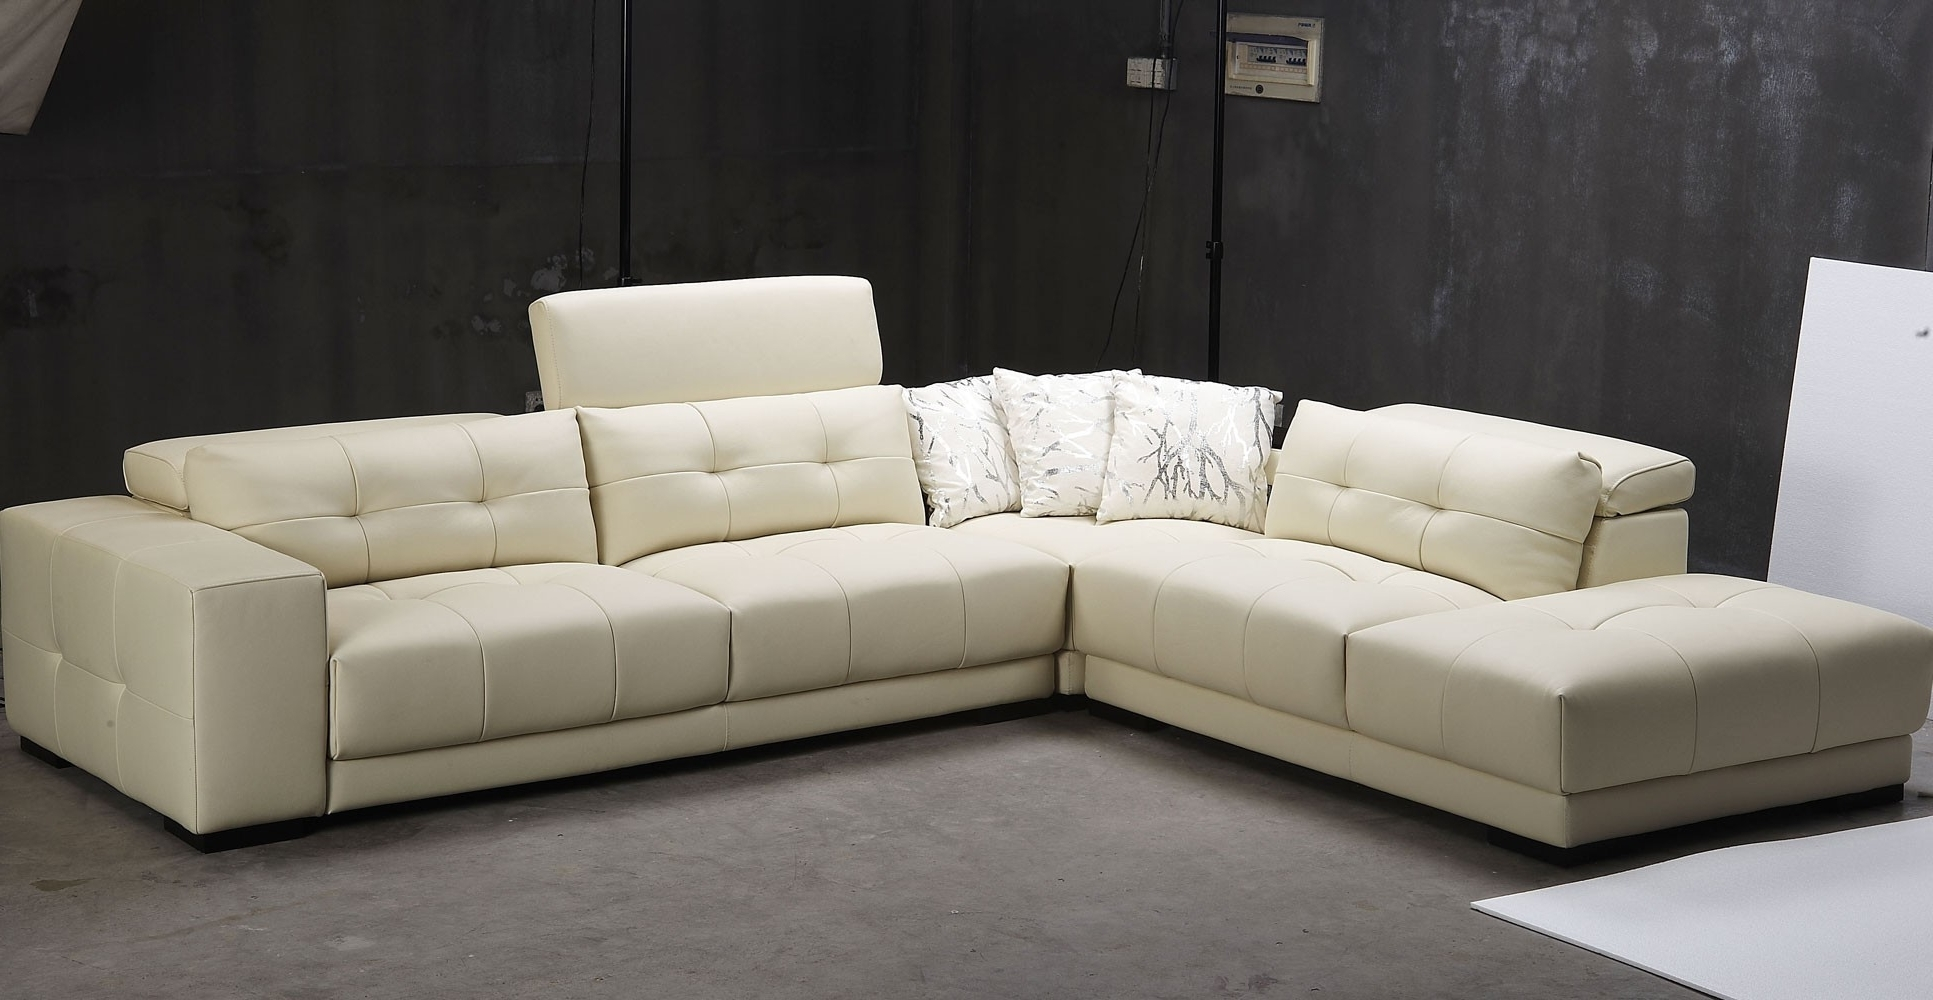 Jedd Fabric Reclining Sectional Sofas Throughout Most Recent Jedd Fabric Reclining Sectional Sofa Reviews Sofas Contemporary (View 3 of 20)